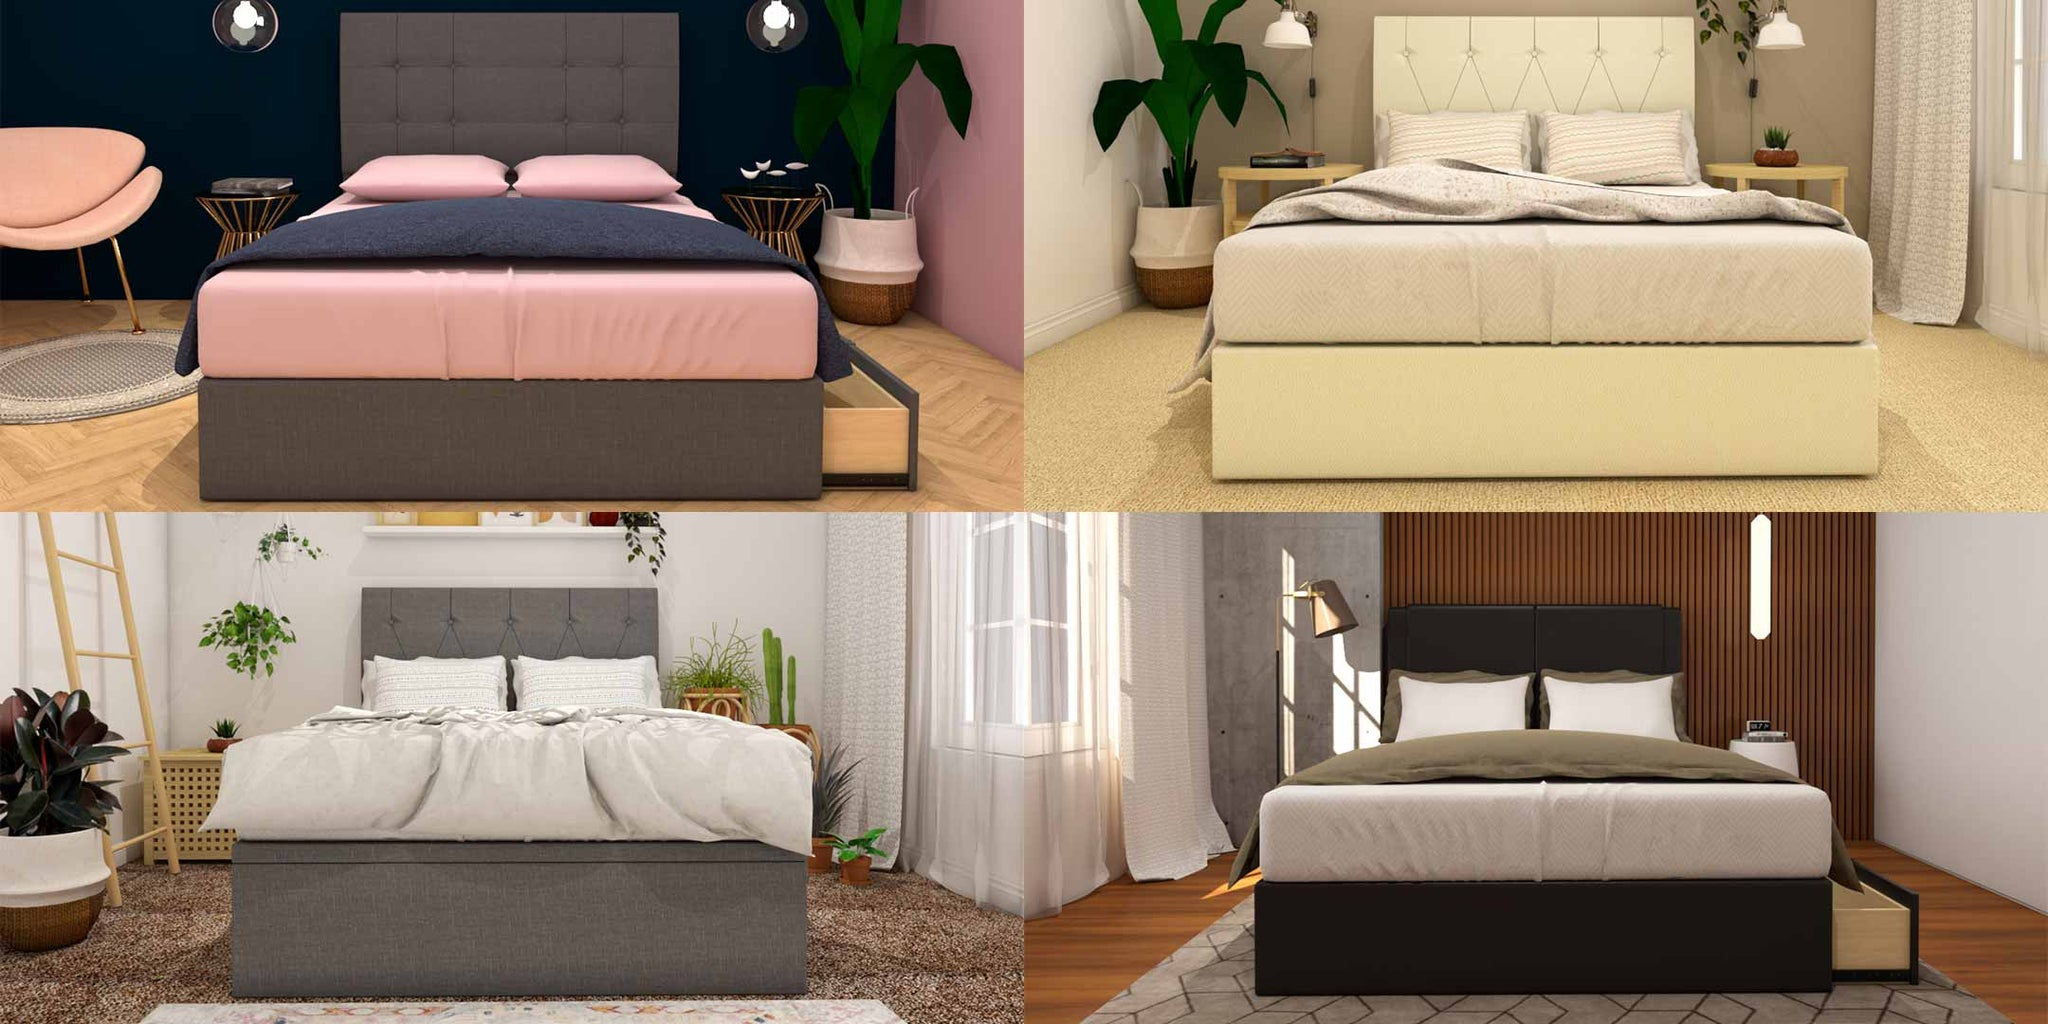 Different styles of storage bedframes for your style